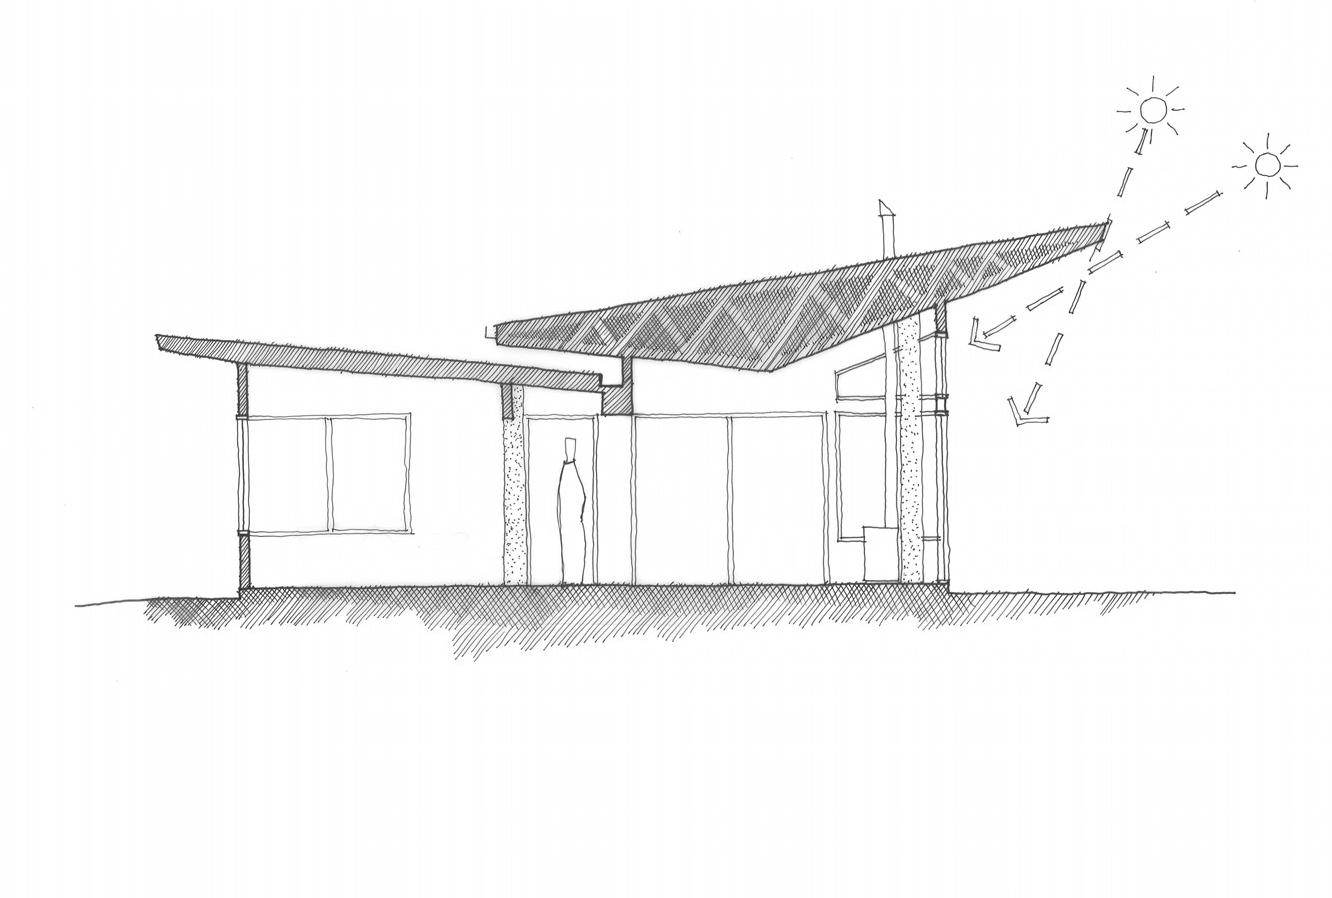 #architecture   #architect   #architecturephotography   #archilovers   #architecturelover   #architectureporn   #cement   #design   #architectureandpeople   #familyhome   #ecohome   #ecohouse   #ecofriendly   #sustainability   #sketch   #architecturelife   #archigram   #home   #architecturemodel   #rural   #country   #clarevalley  #conceptdrawings